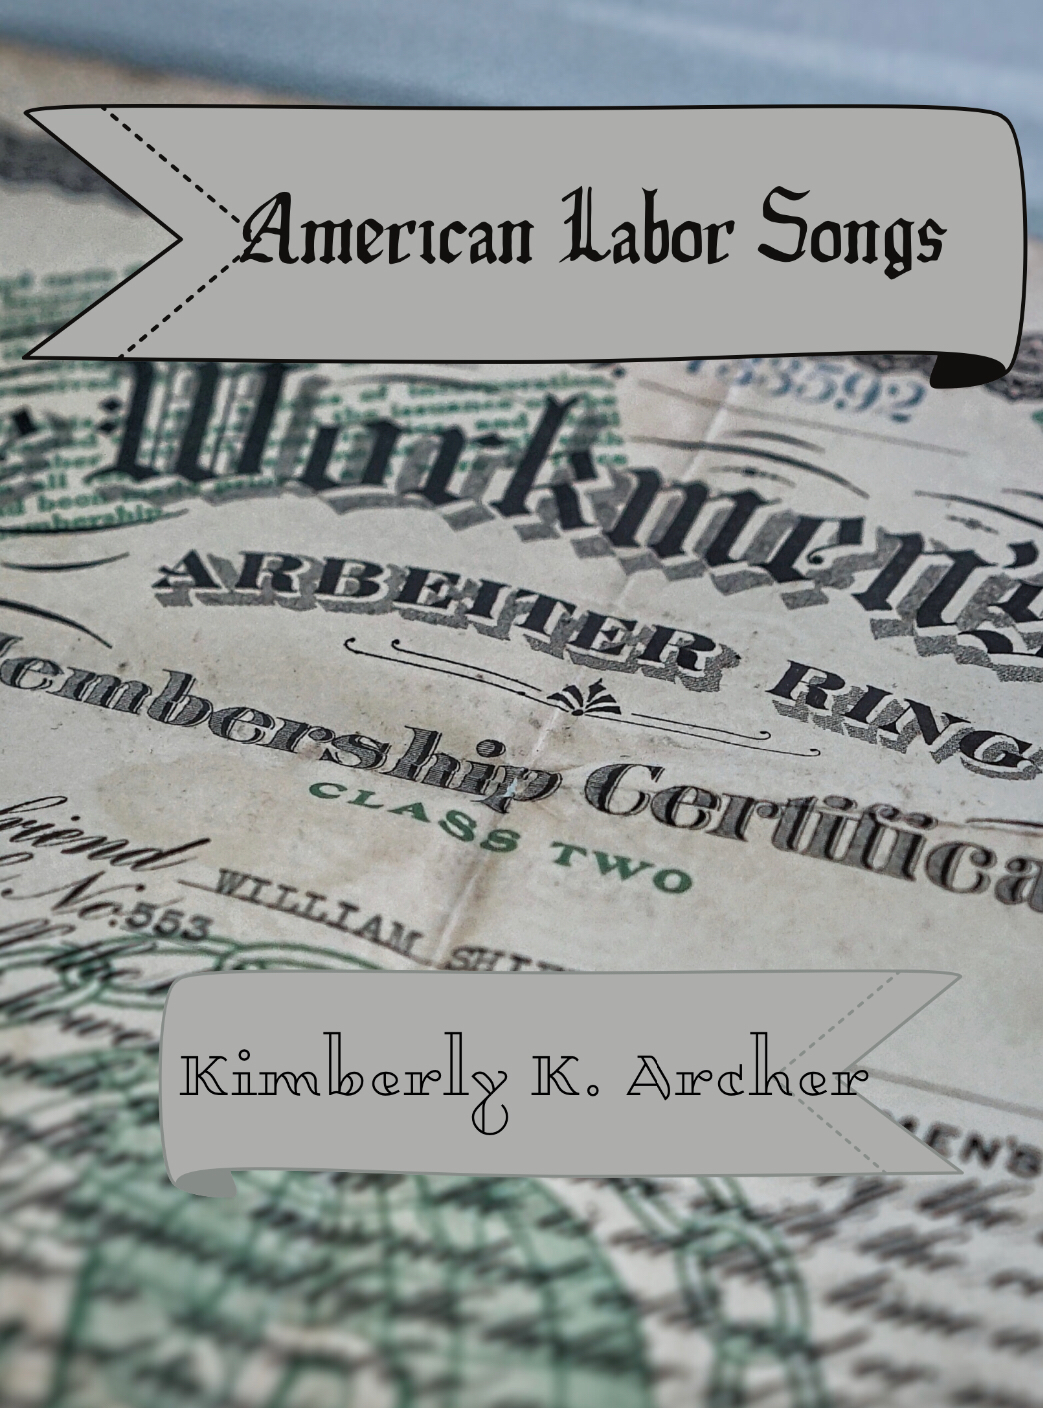 American Labor Songs by Kimberly Archer